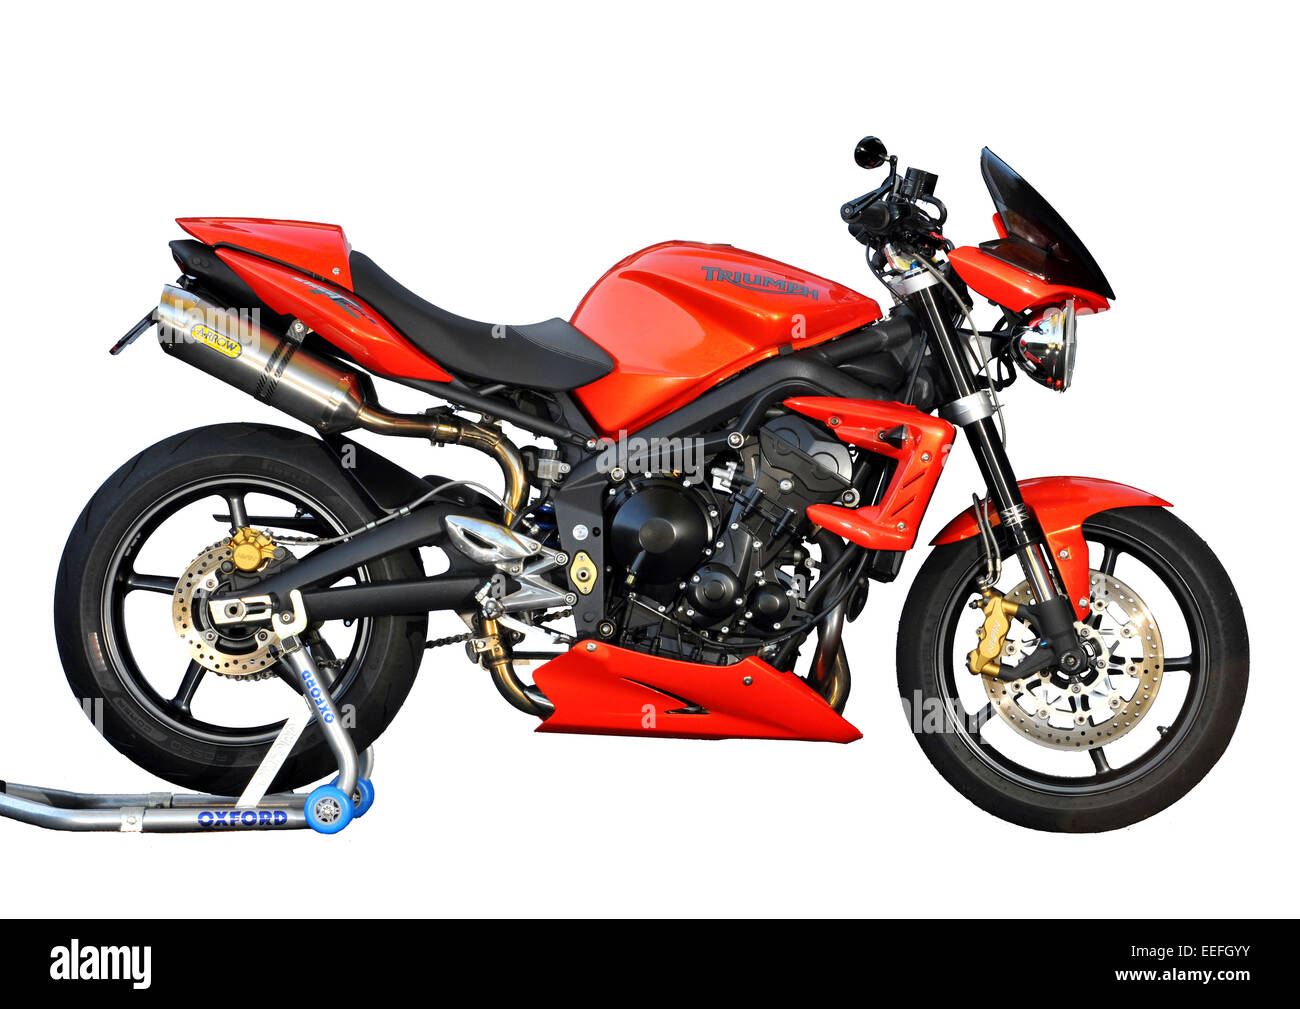 2011 triumph street triple 675 r motorcycle with arrow exhaust and stock photo 77789263 alamy. Black Bedroom Furniture Sets. Home Design Ideas